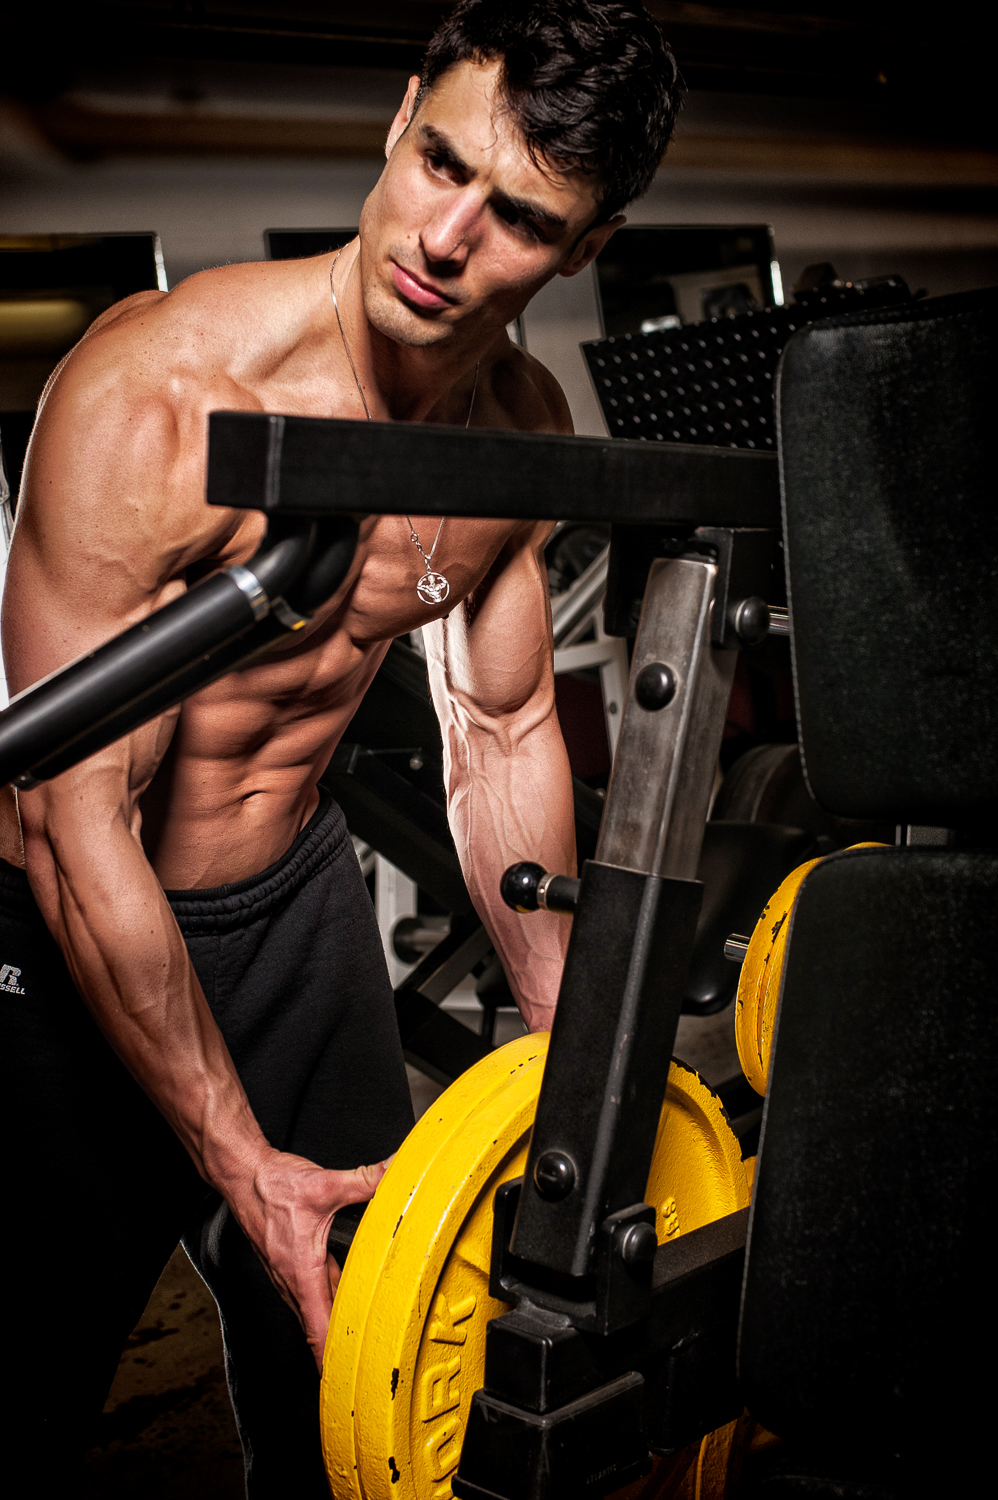 Hamilton Toronto Fitness Photographer - Marek Michalek - Rob Monroe Gym Shoot-2.jpg